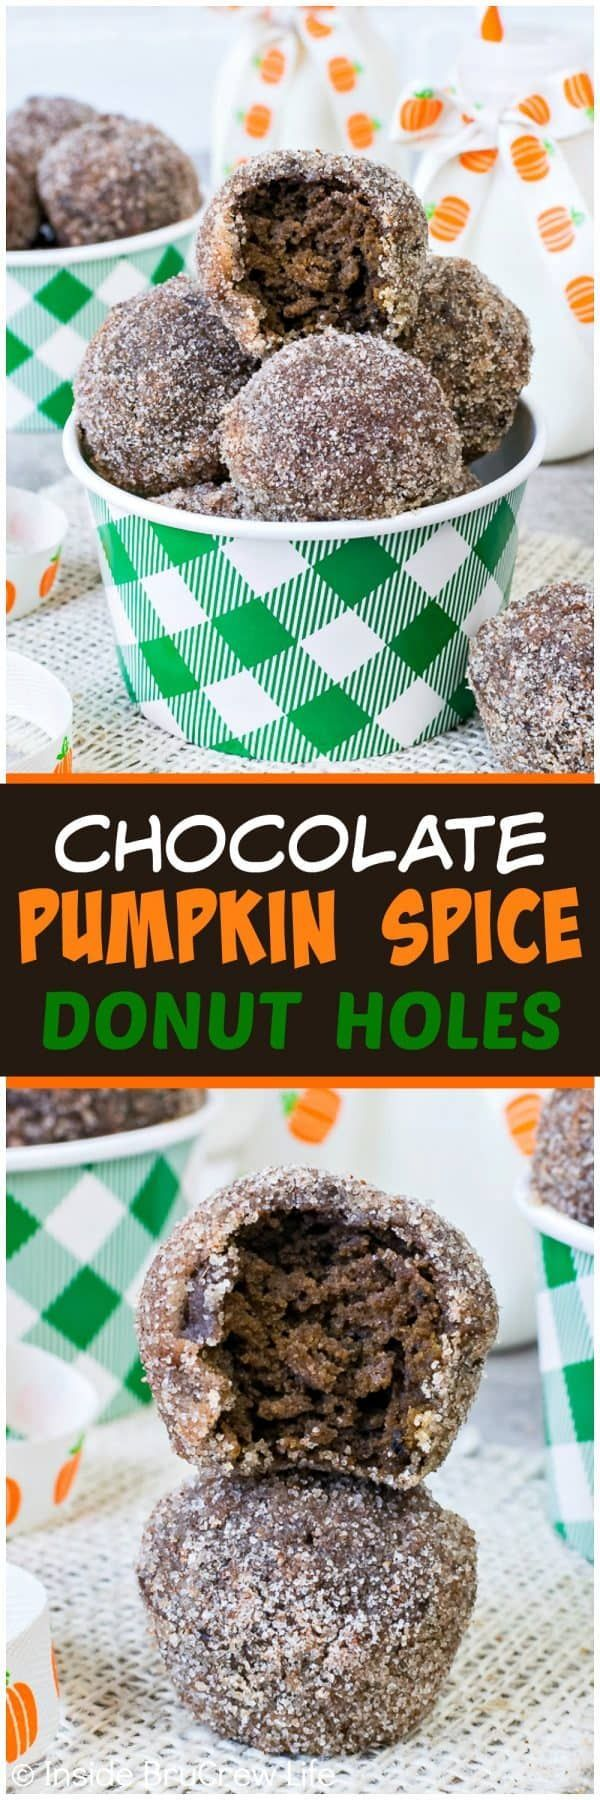 Chocolate Pumpkin Spice Donut Holes - little soft donut holes coated in a crunchy sugar coating makes an awesome breakfast treat. This is a must make recipe for fall! #pumpkin #donuts #fall